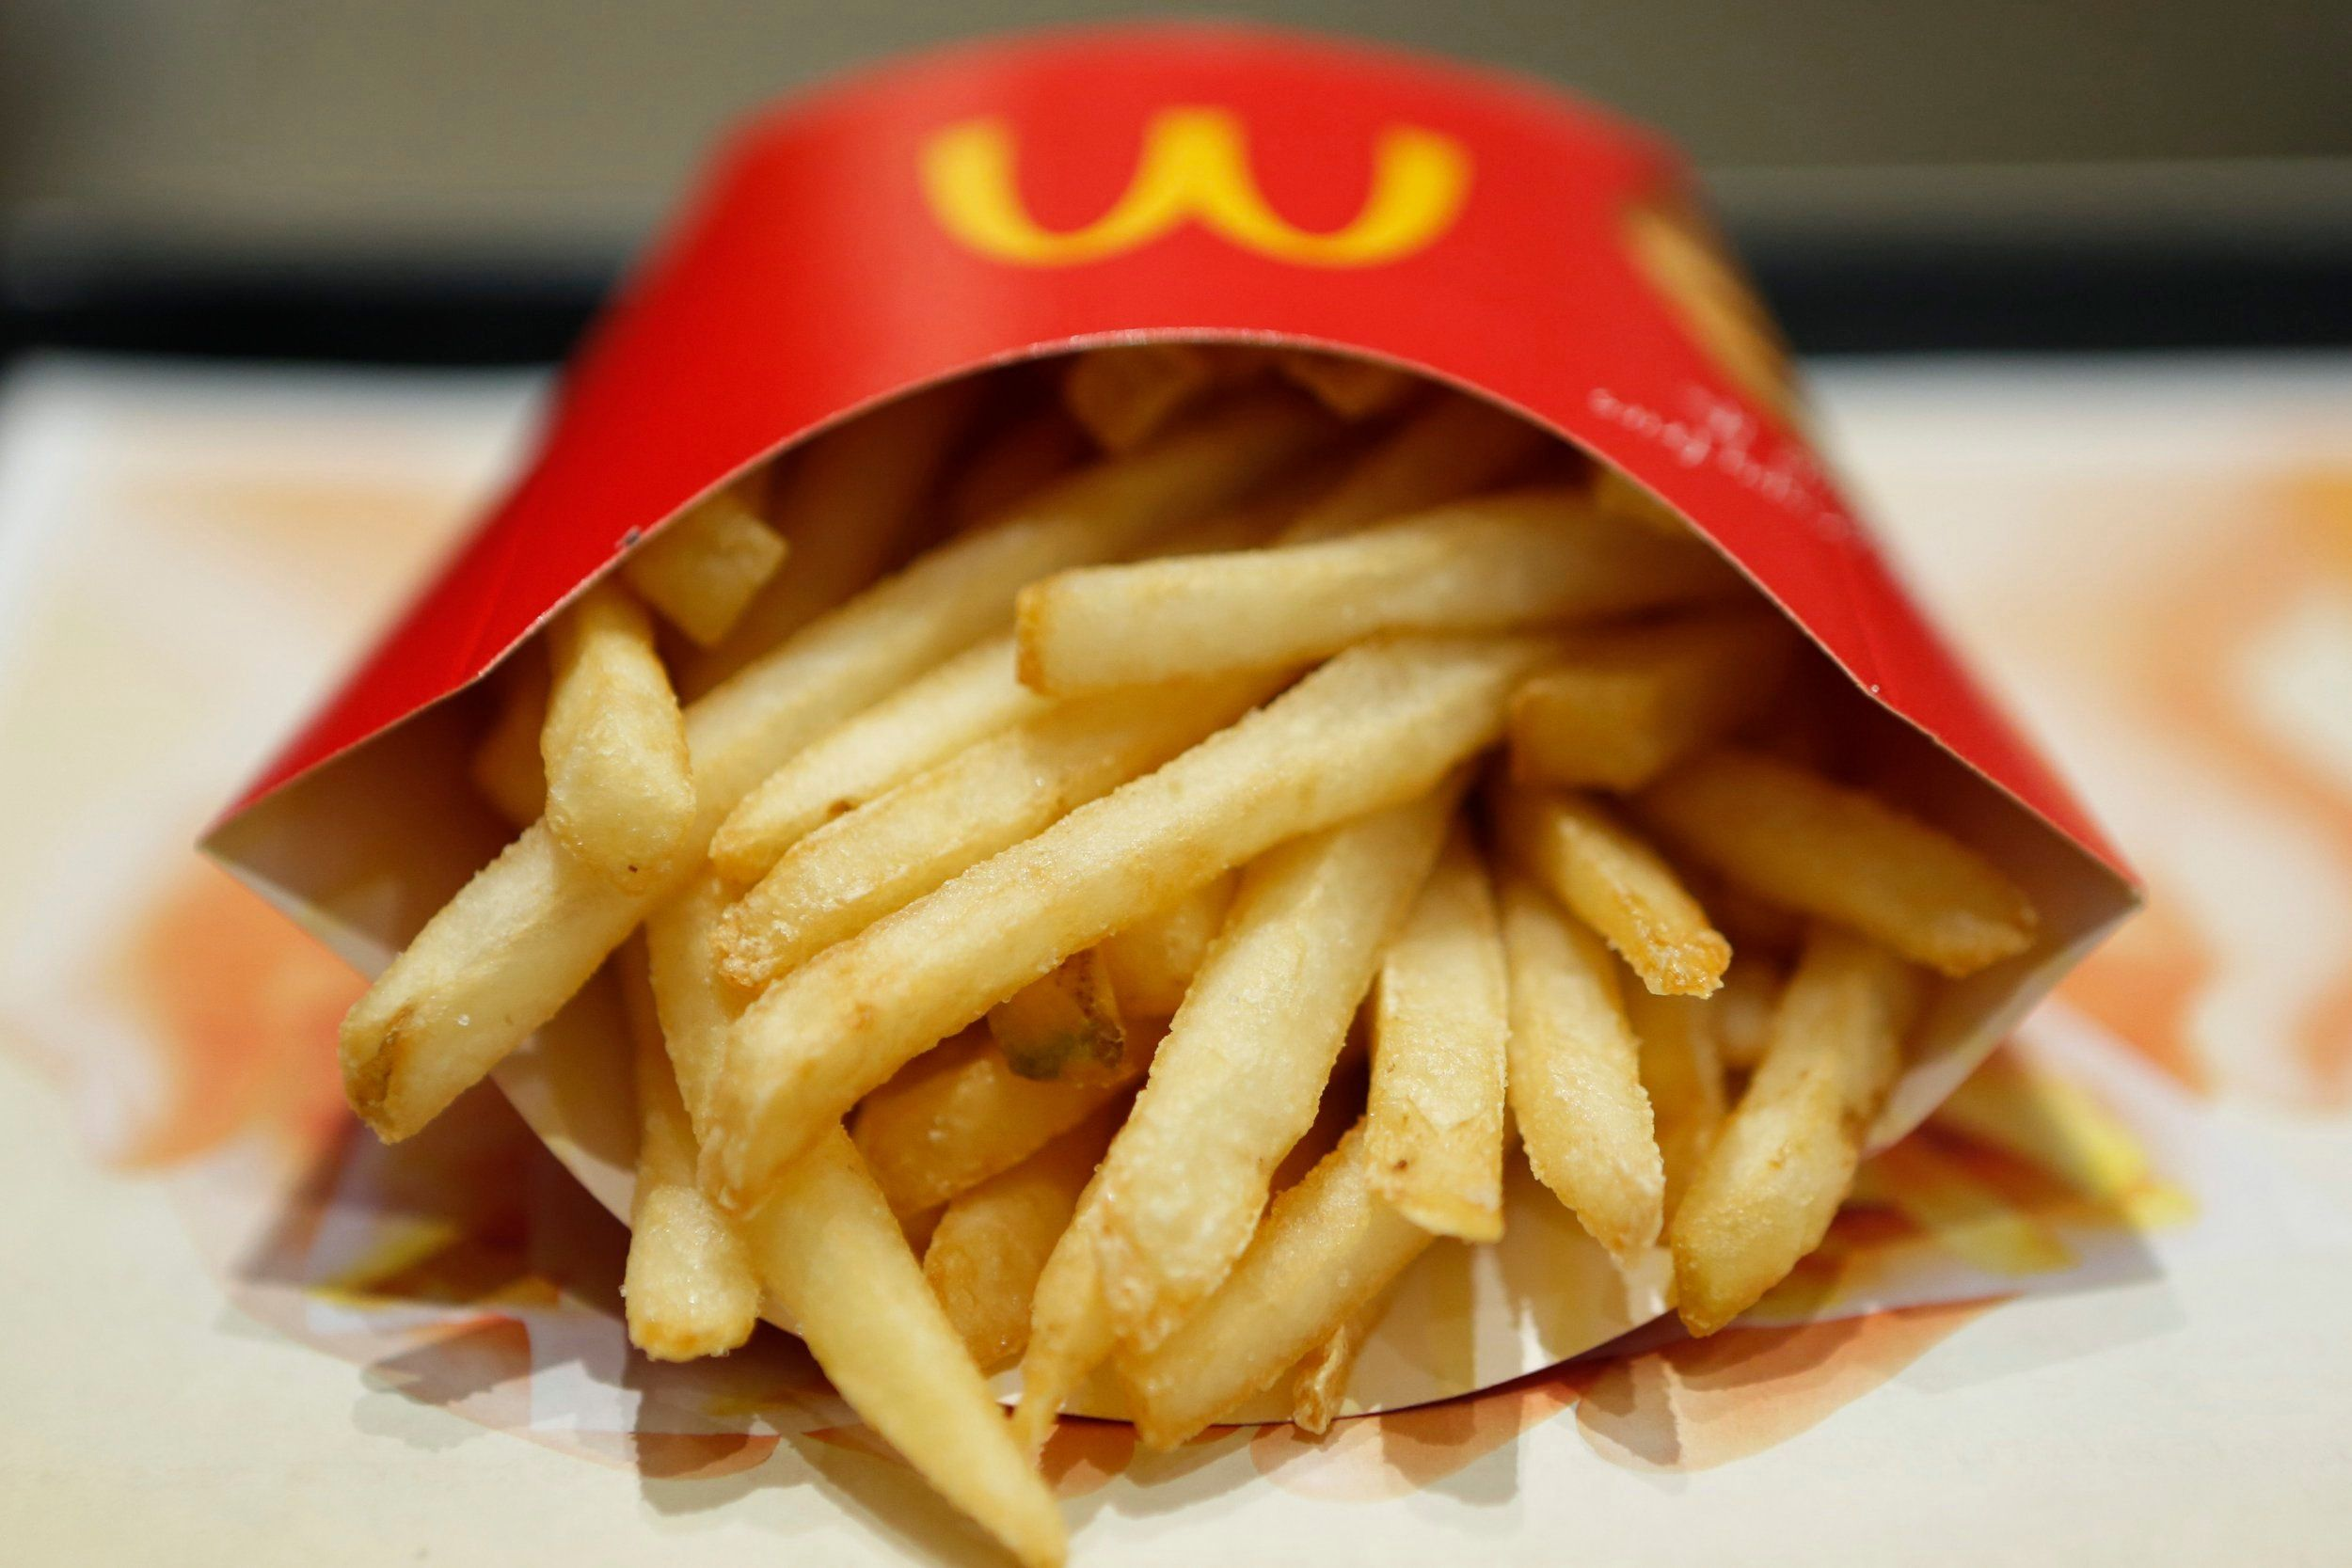 Picture Bloomberg Via Getty Images Theres No Such Thing As A Free Lunch Unless Youre Talking About Mc Mcdonalds Fries Mcdonald French Fries Mcdonalds Chips